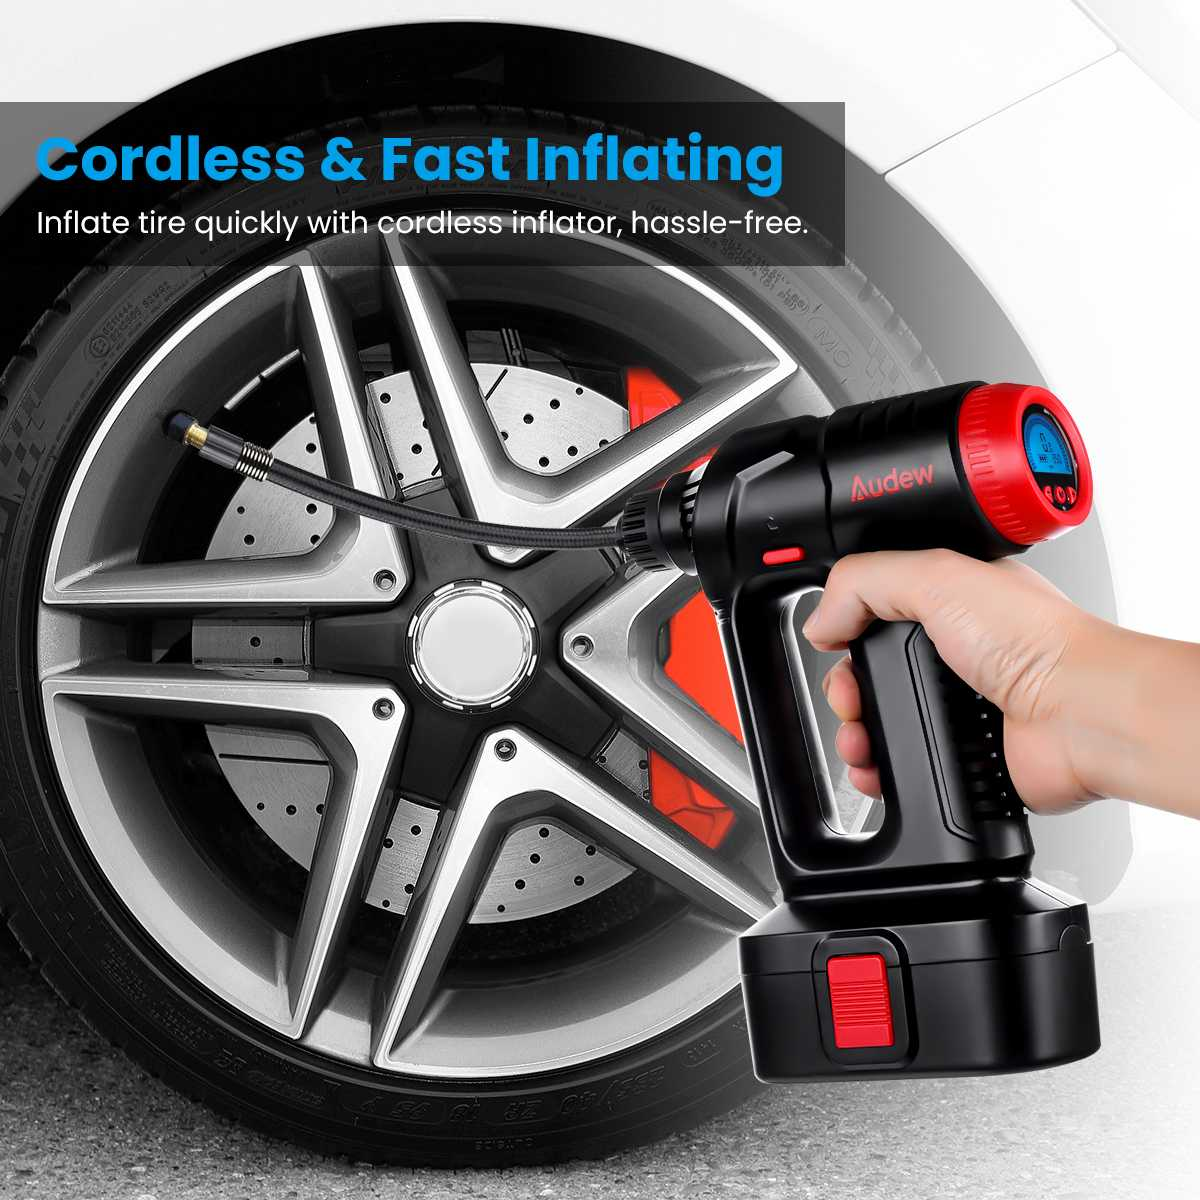 Image 4 - 12V 130PSI Cordless Handheld Air Inflatable Pump Car Tyre Inflator LCD Digital with Rechargeable Battery For Auto Emergency-in Inflatable Pump from Automobiles & Motorcycles